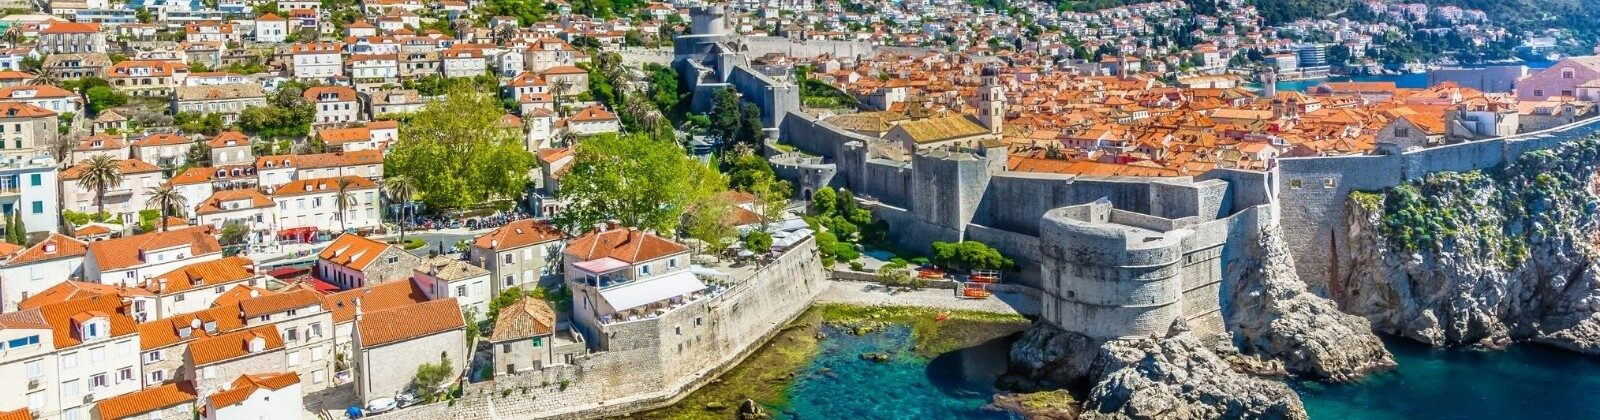 dubrovnik city wall europe